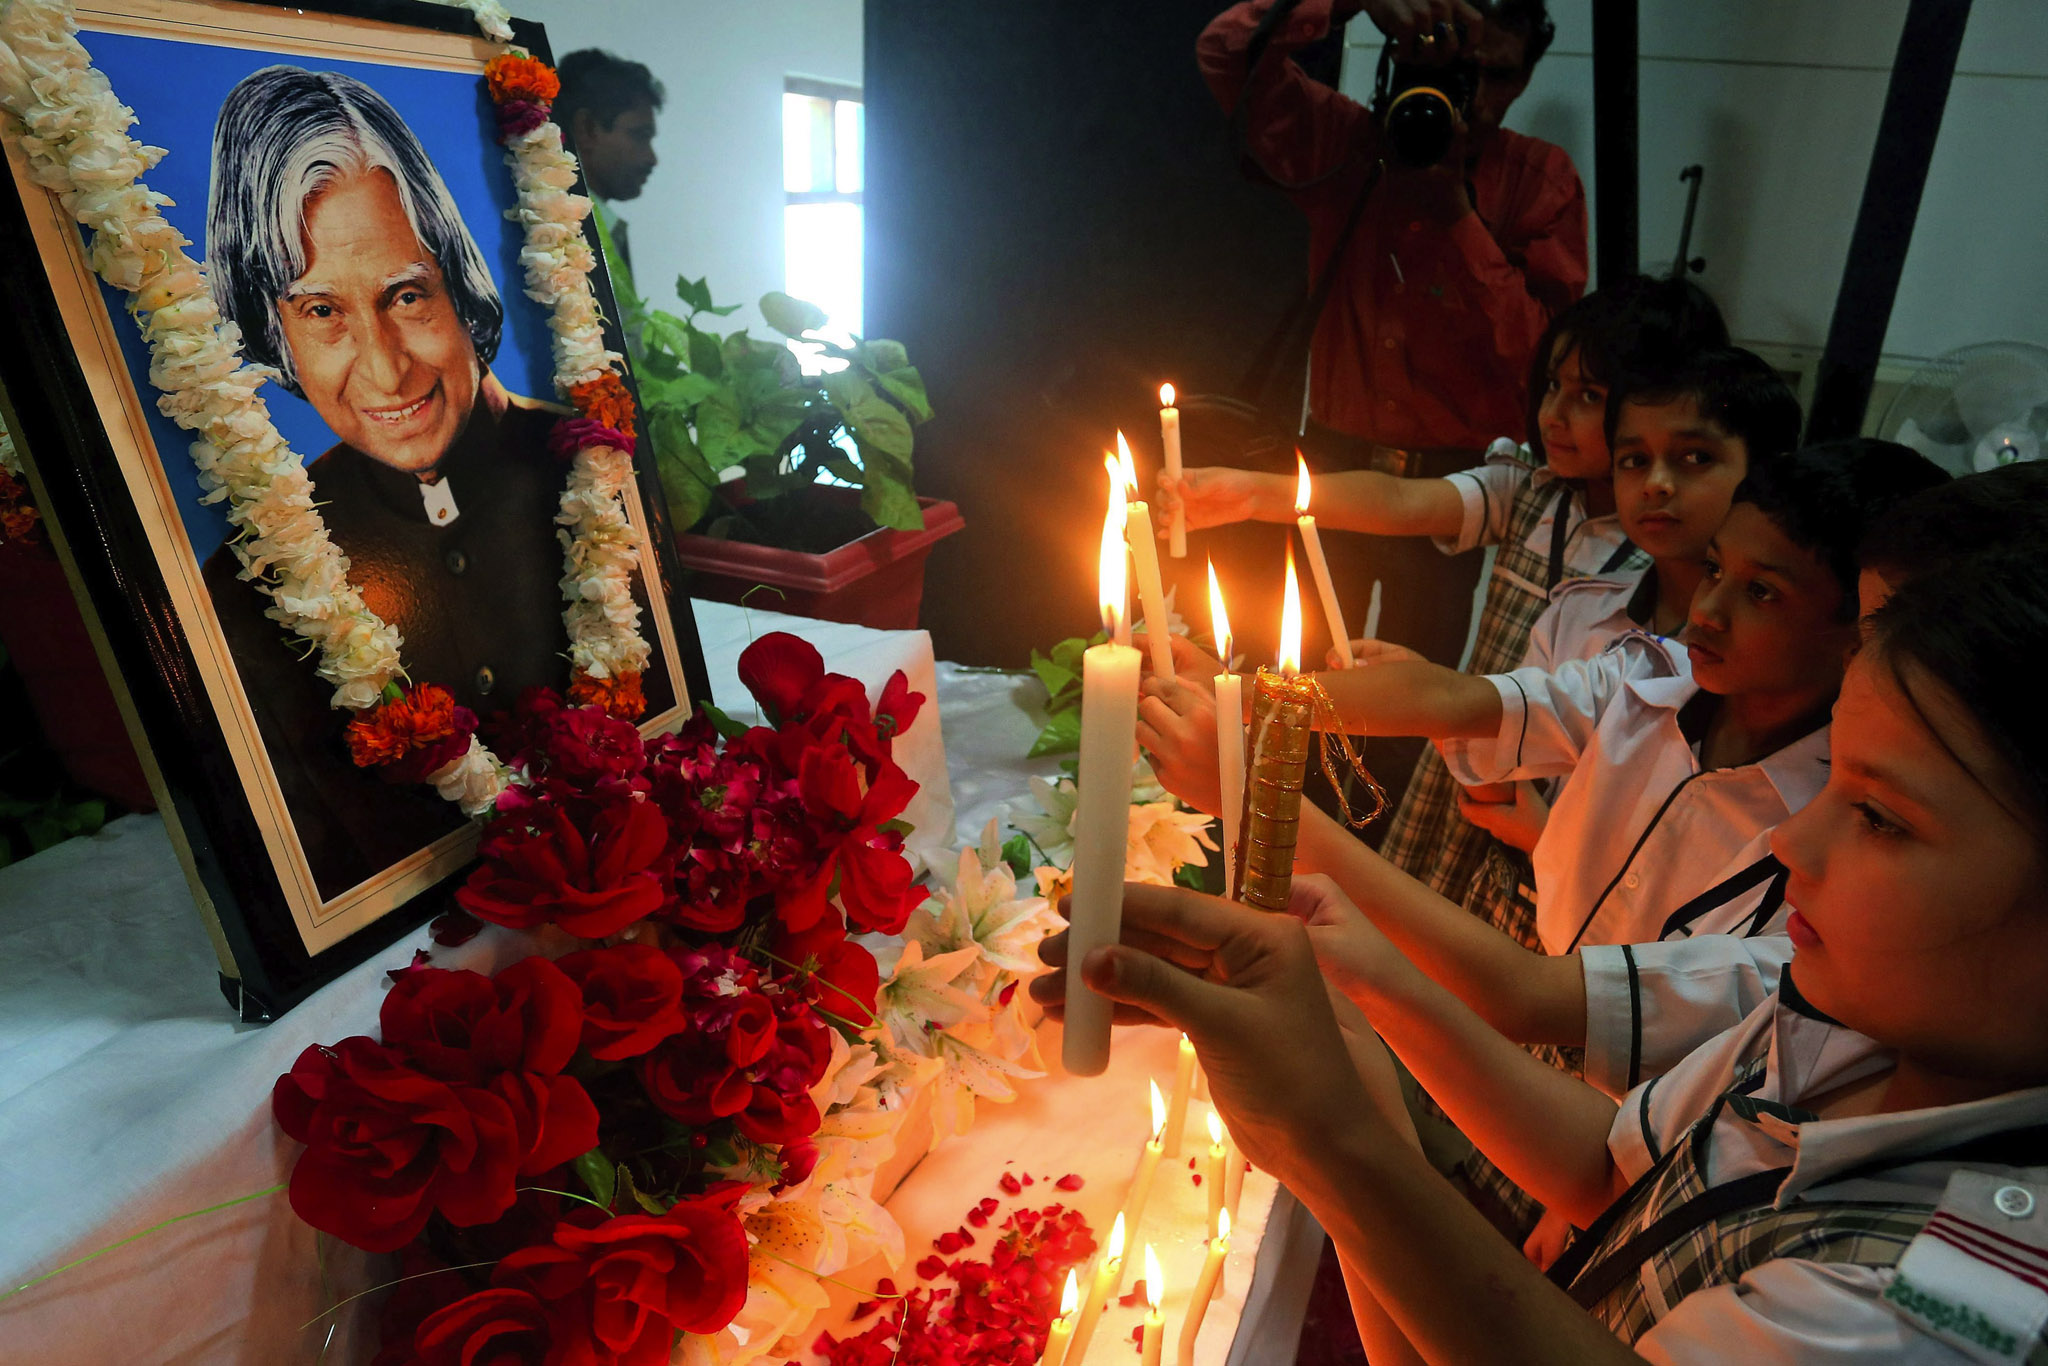 Indian school children light candles in front of a portrait of late Indian former President APJ Abdul Kalam, as they pay their respect at a school in Bhopal, India.